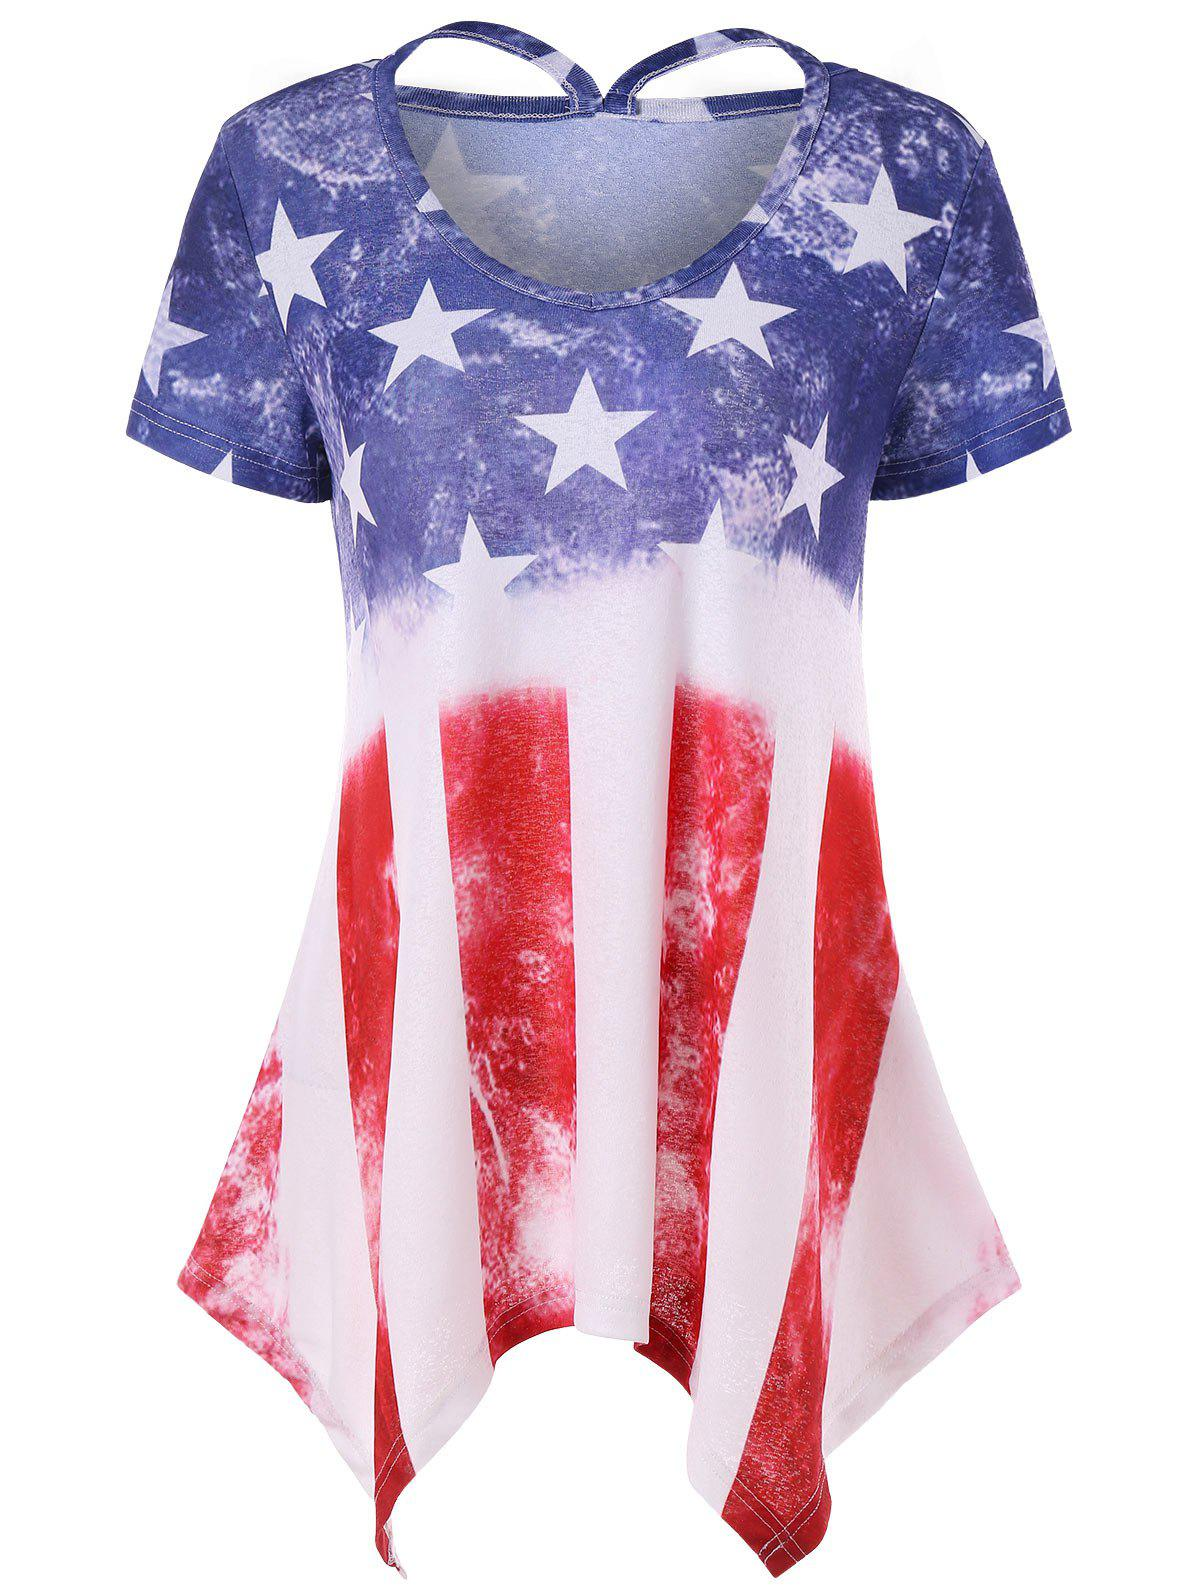 New American Flag Short Sleeve T-shirt